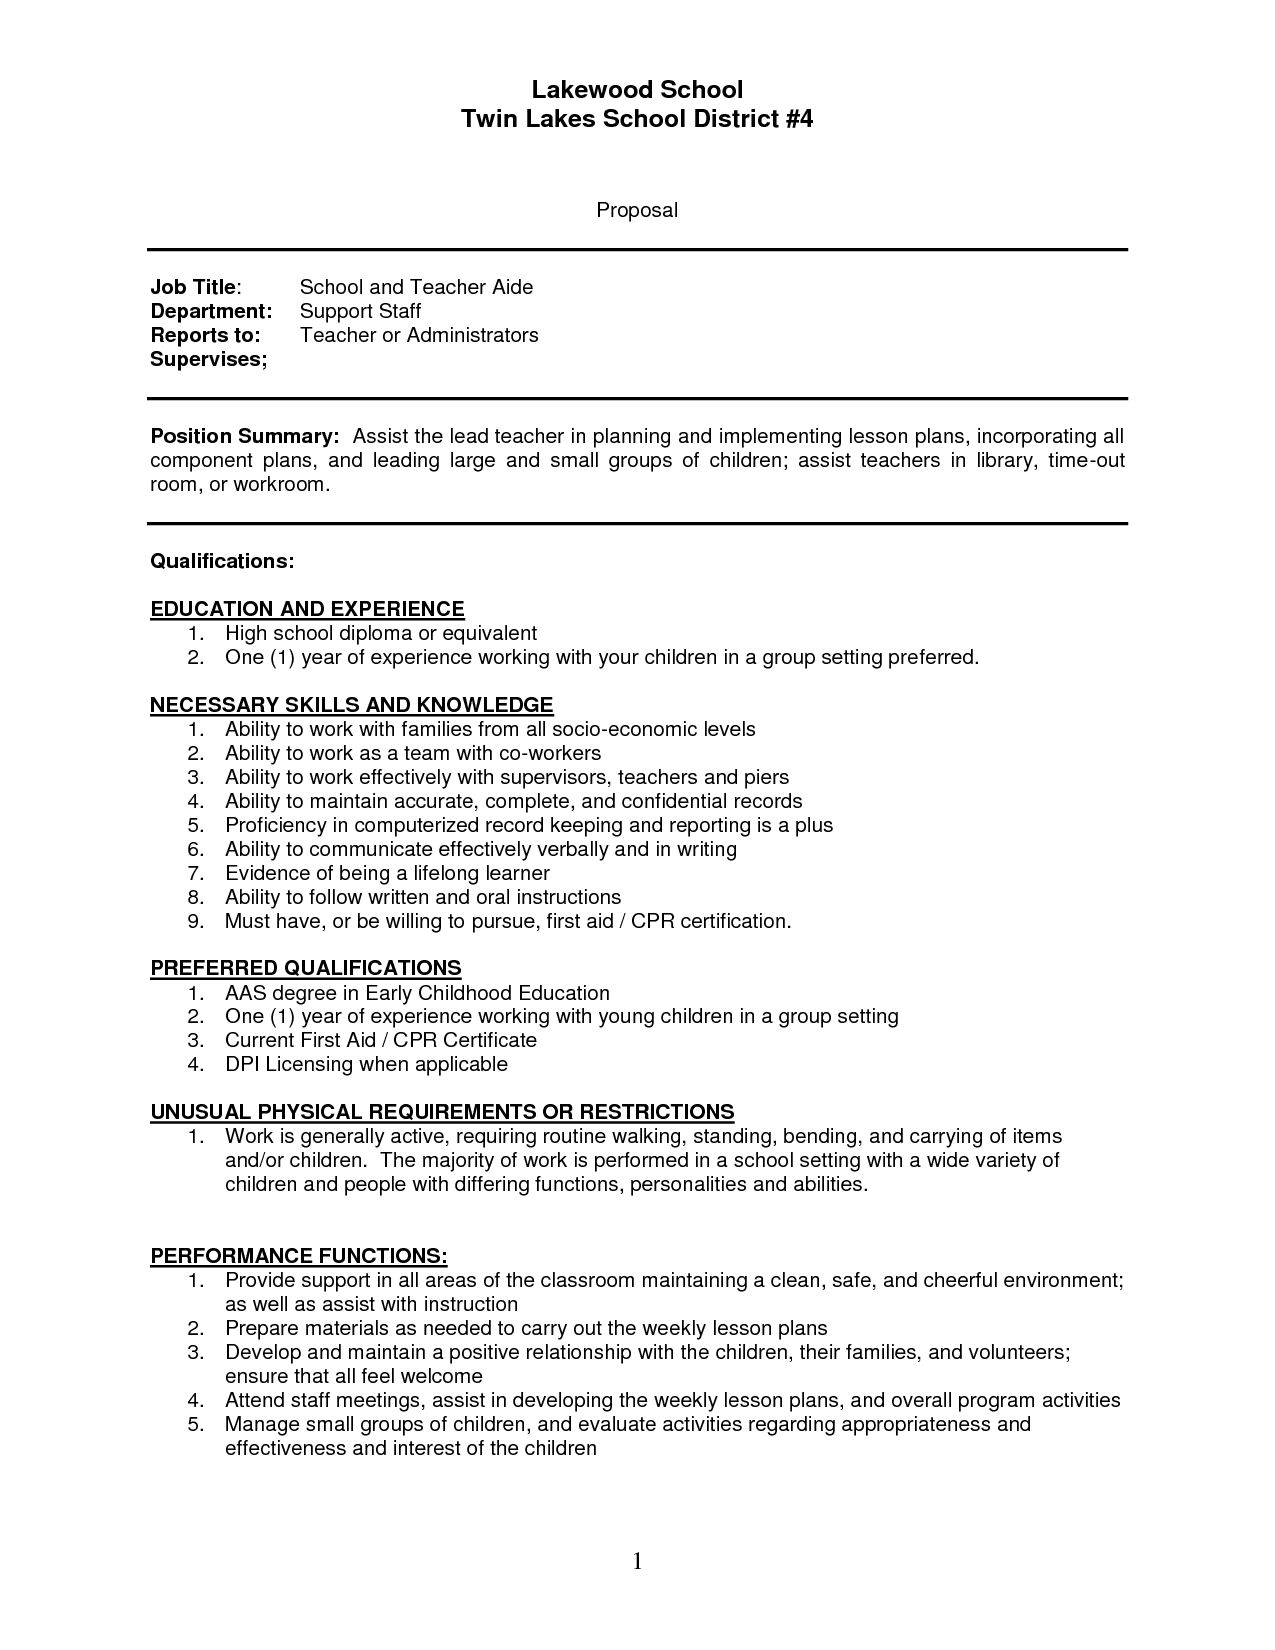 Sample Resume For Teaching Position Sample Resume Teachers Aide Assistant Cover Letter Teacher Sap .